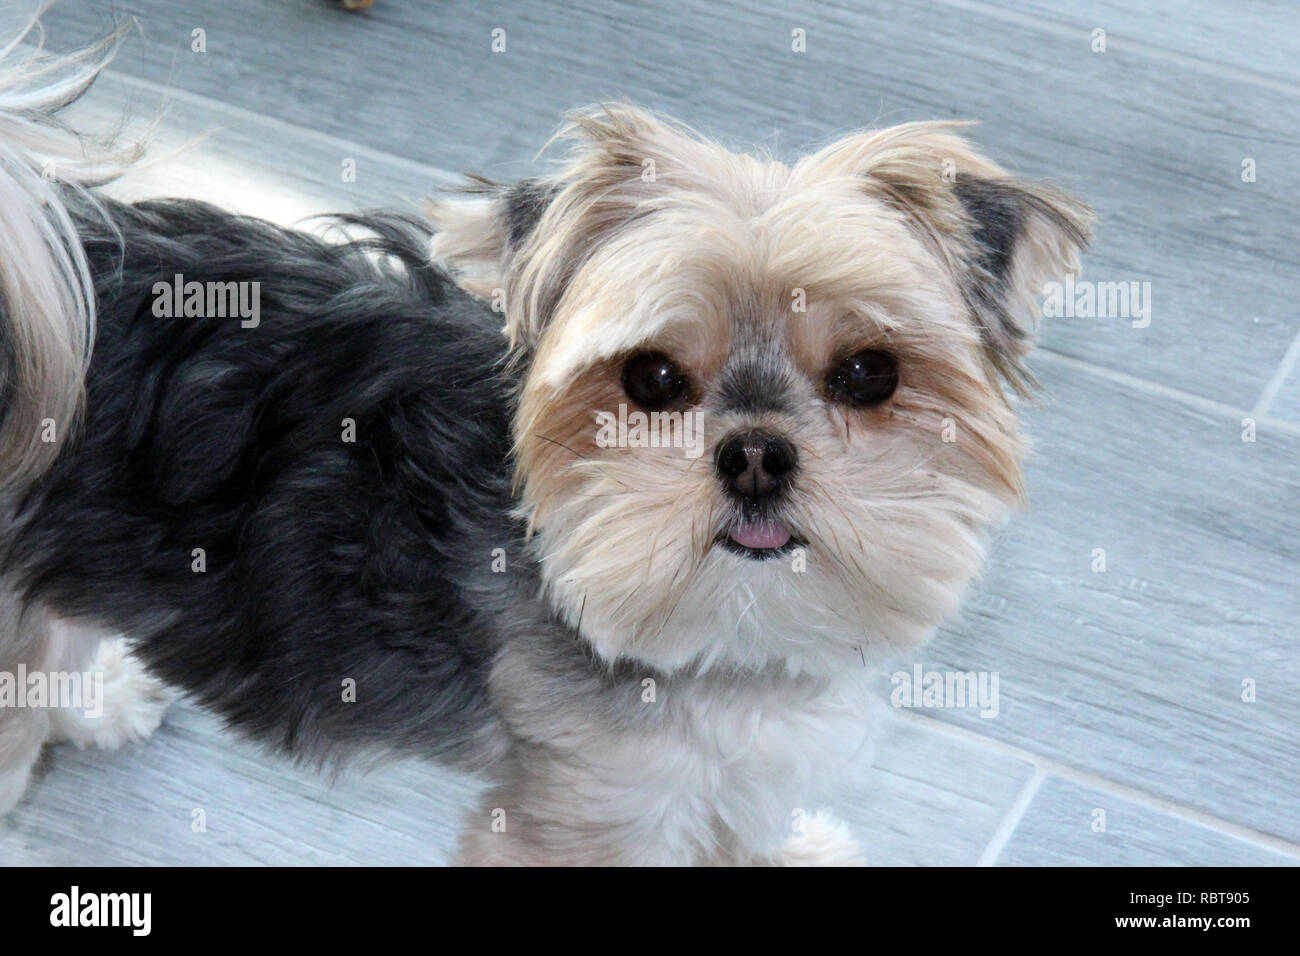 Close up of a Morkie, Maltese/Yorkshire Terrier mix - Stock Image